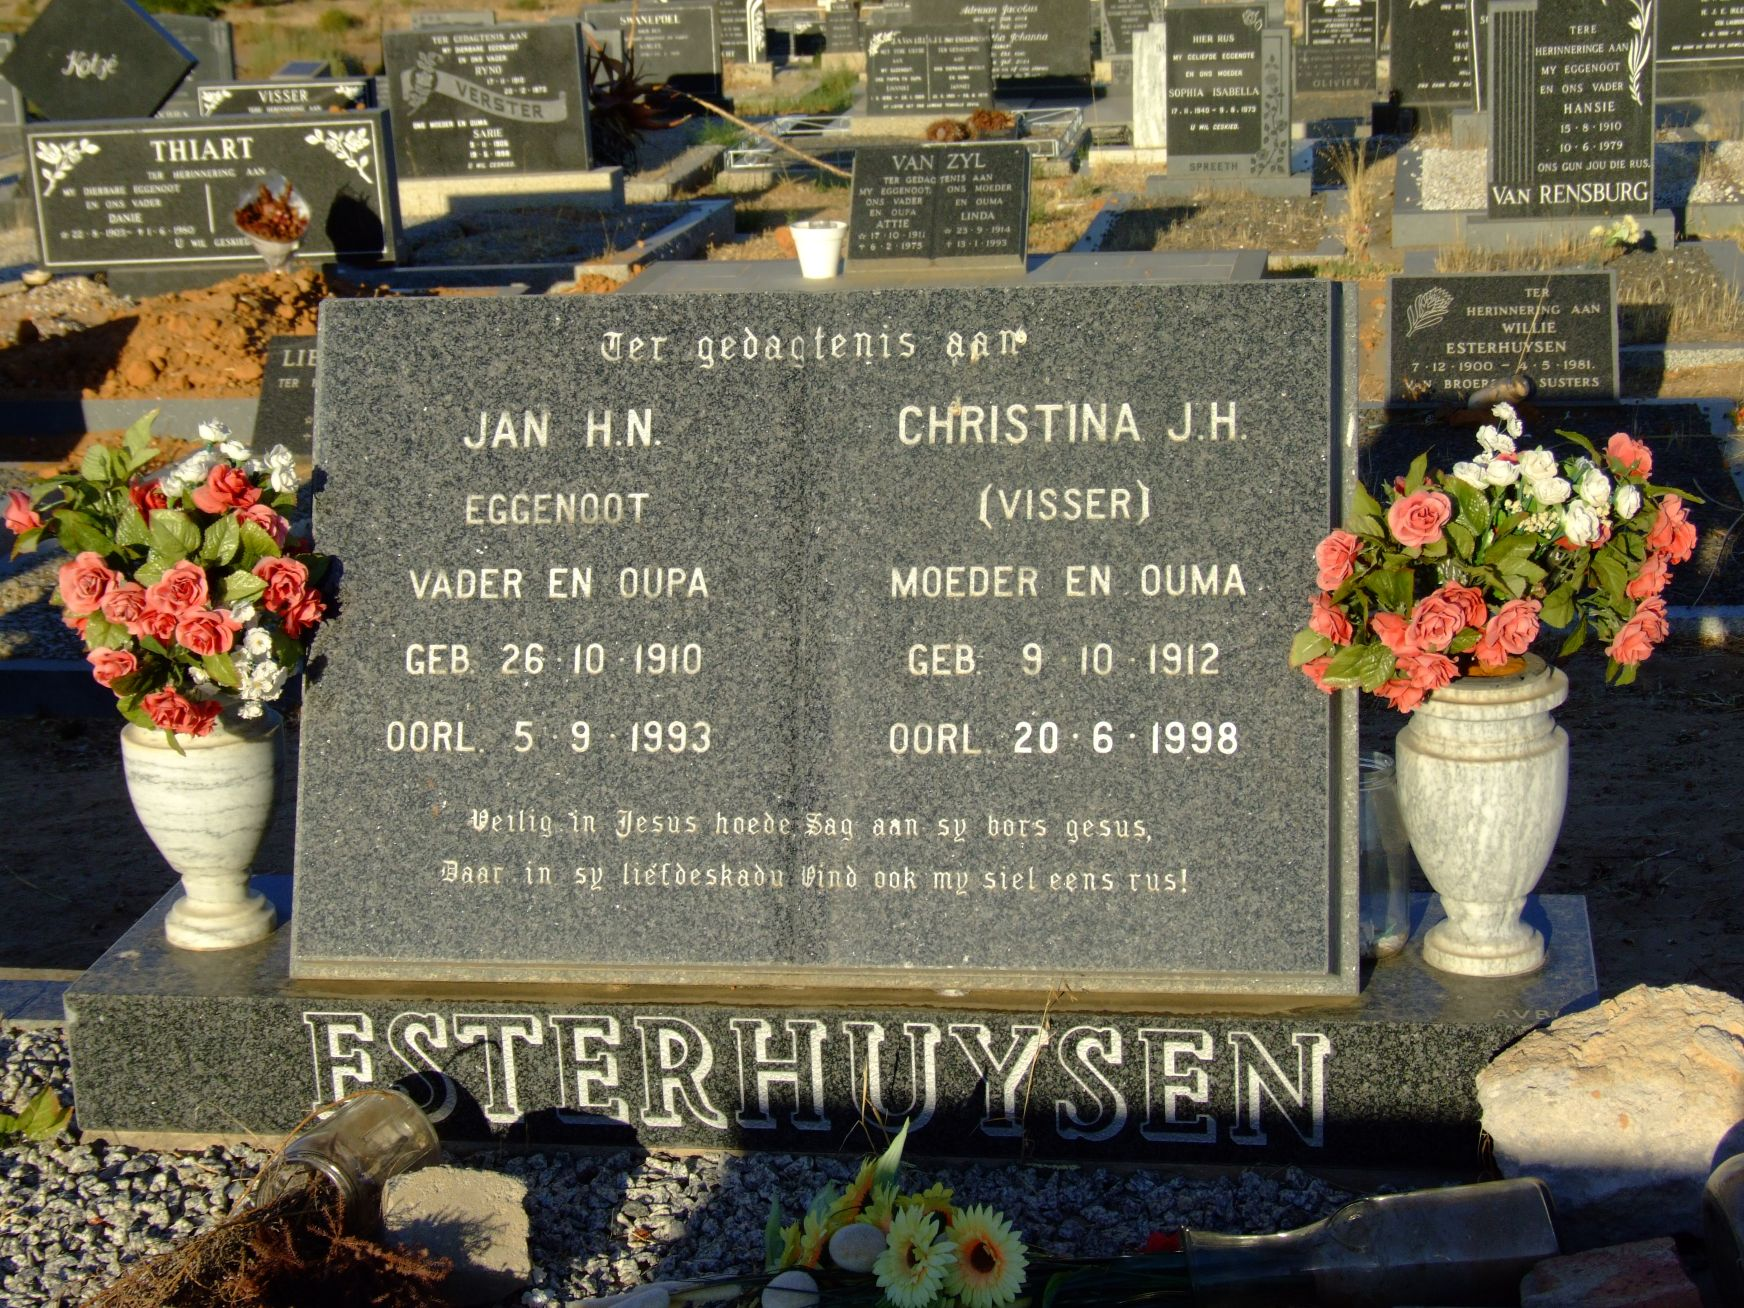 Esterhuysen, Jan H. N. and Esterhuysen, Christina J. H. (nee Vis